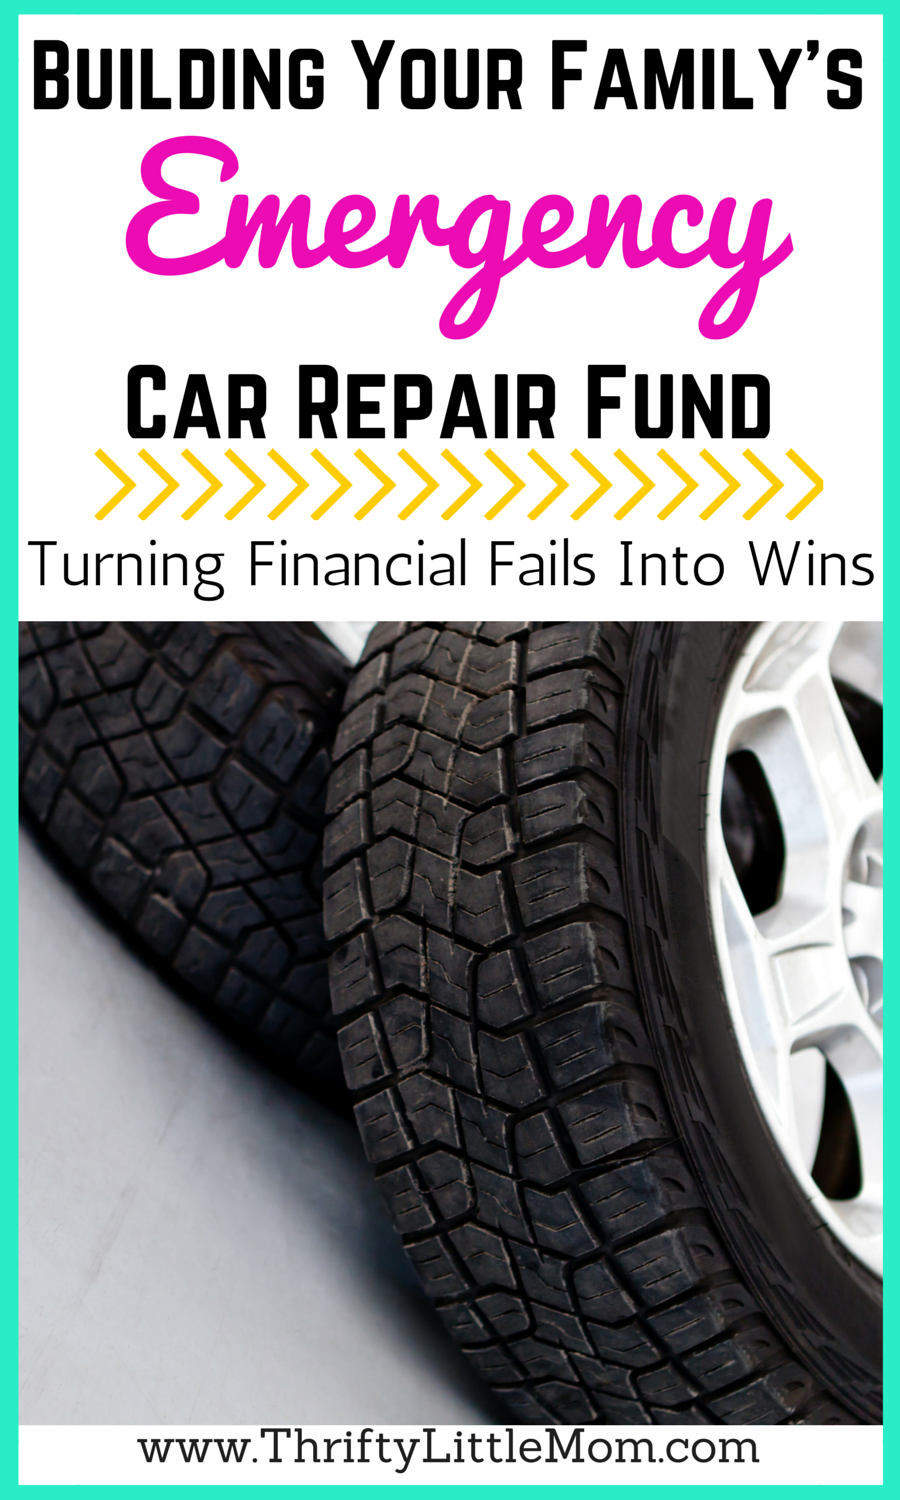 Building Your Family's Emergency Car Repair Fund